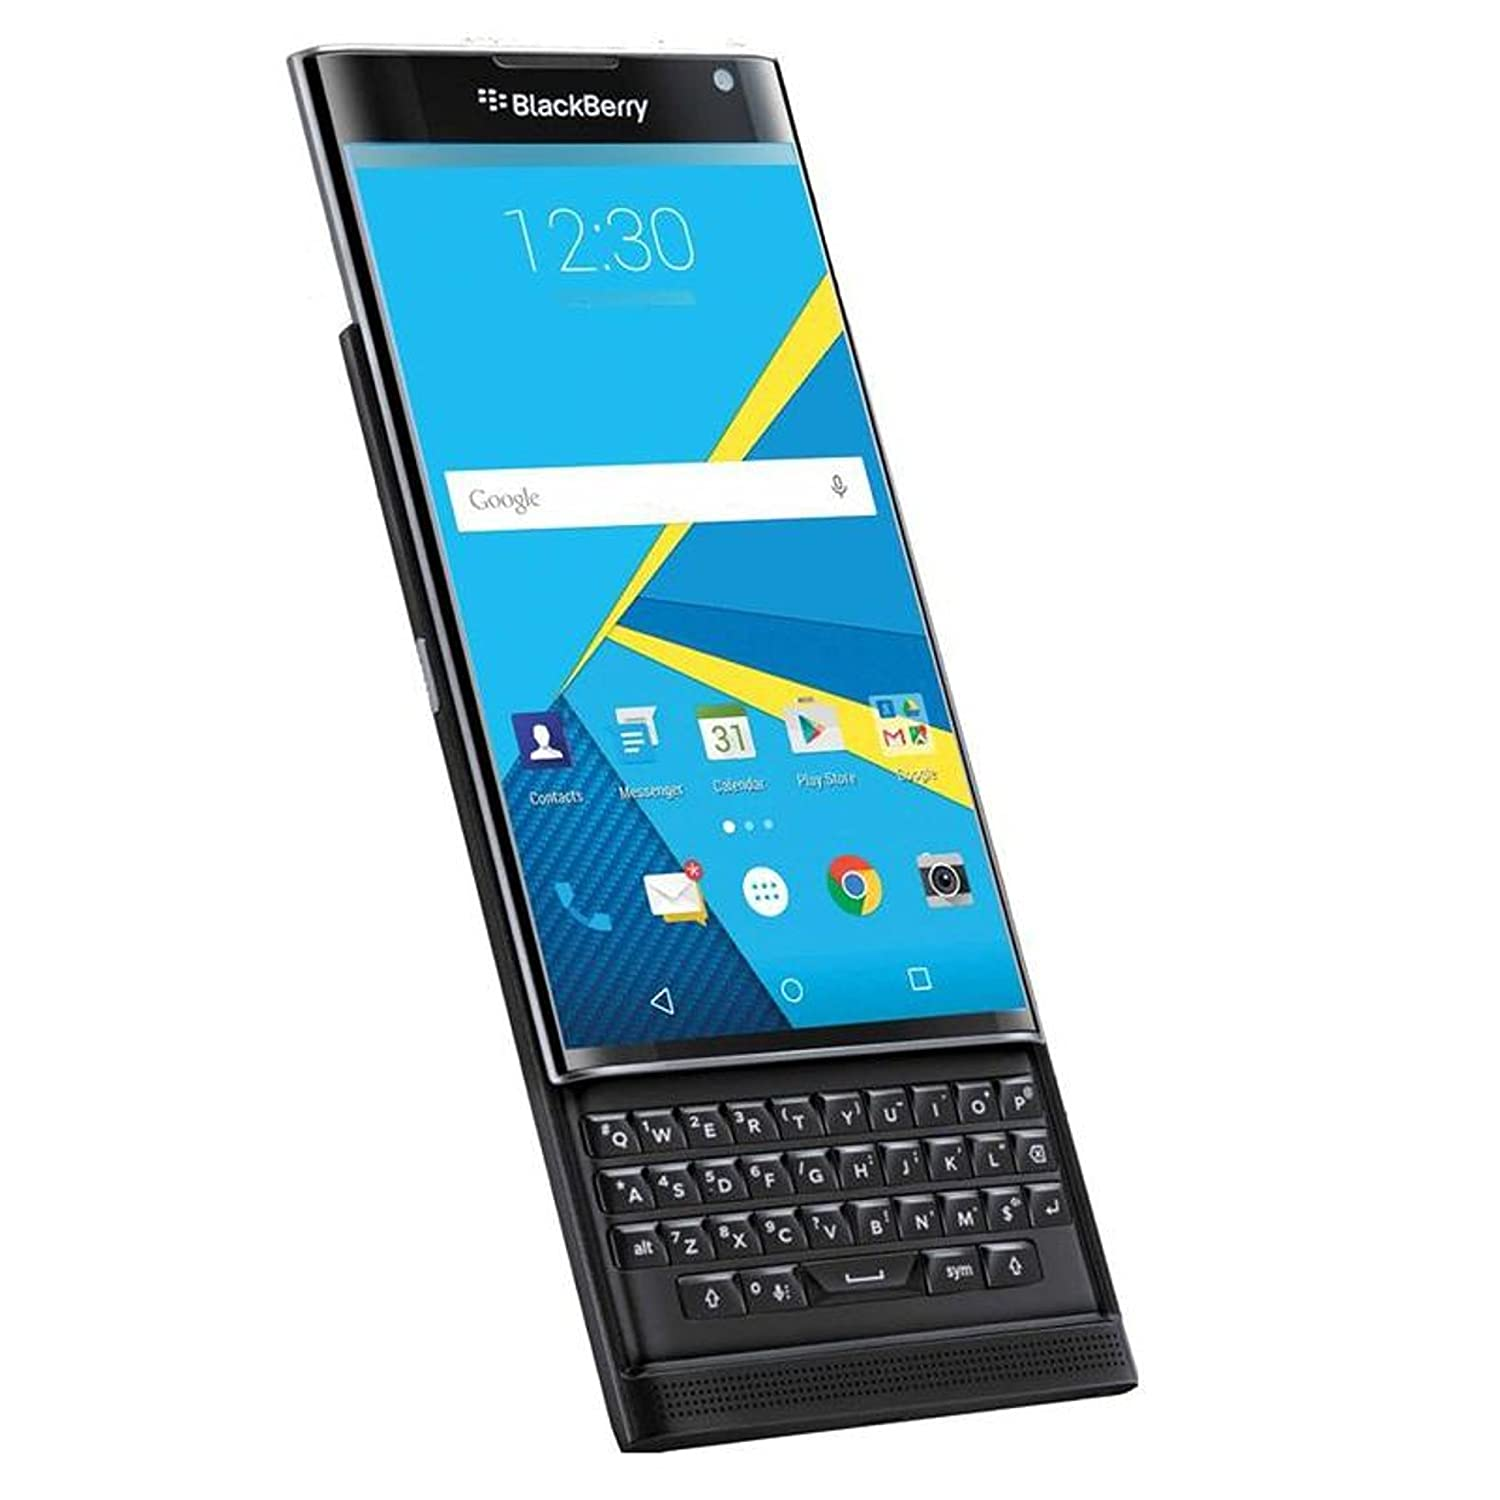 Phone Blackberry Android Phones List amazon com blackberry priv factory unlocked smartphone u s warranty black cell phones accessories